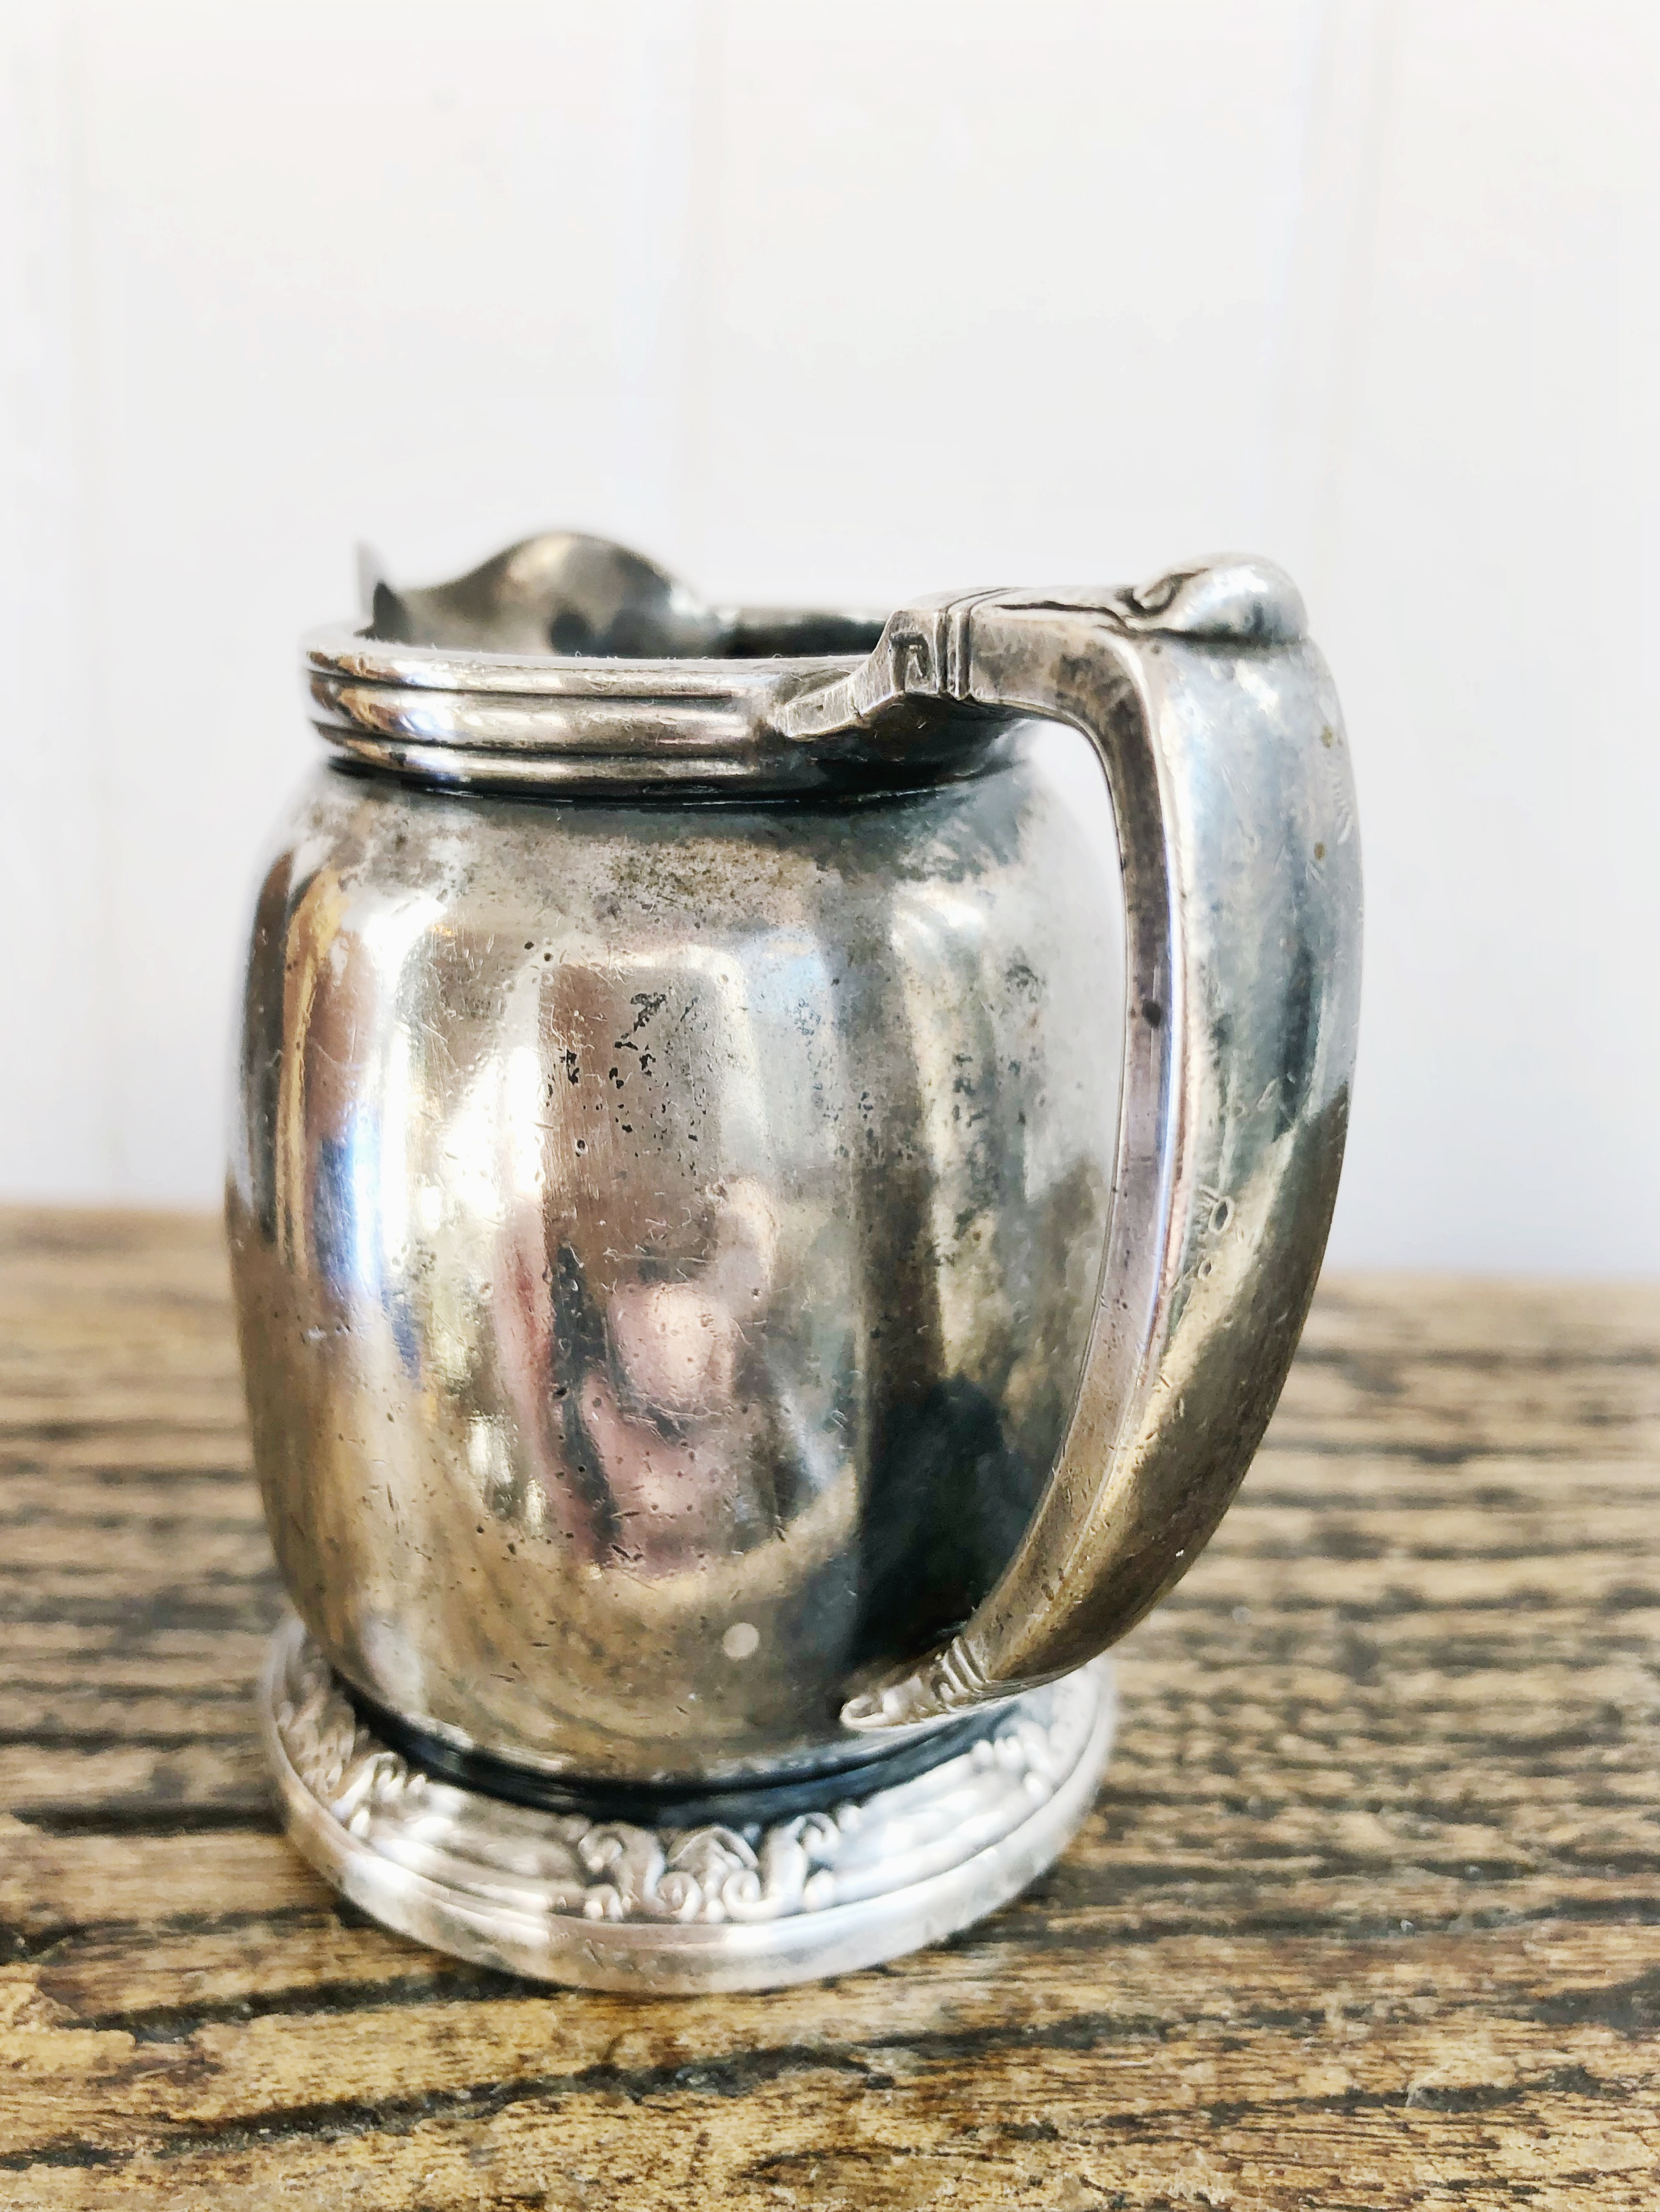 1949 Silver Plated Creamer from the Waldorf Astoria Hotel